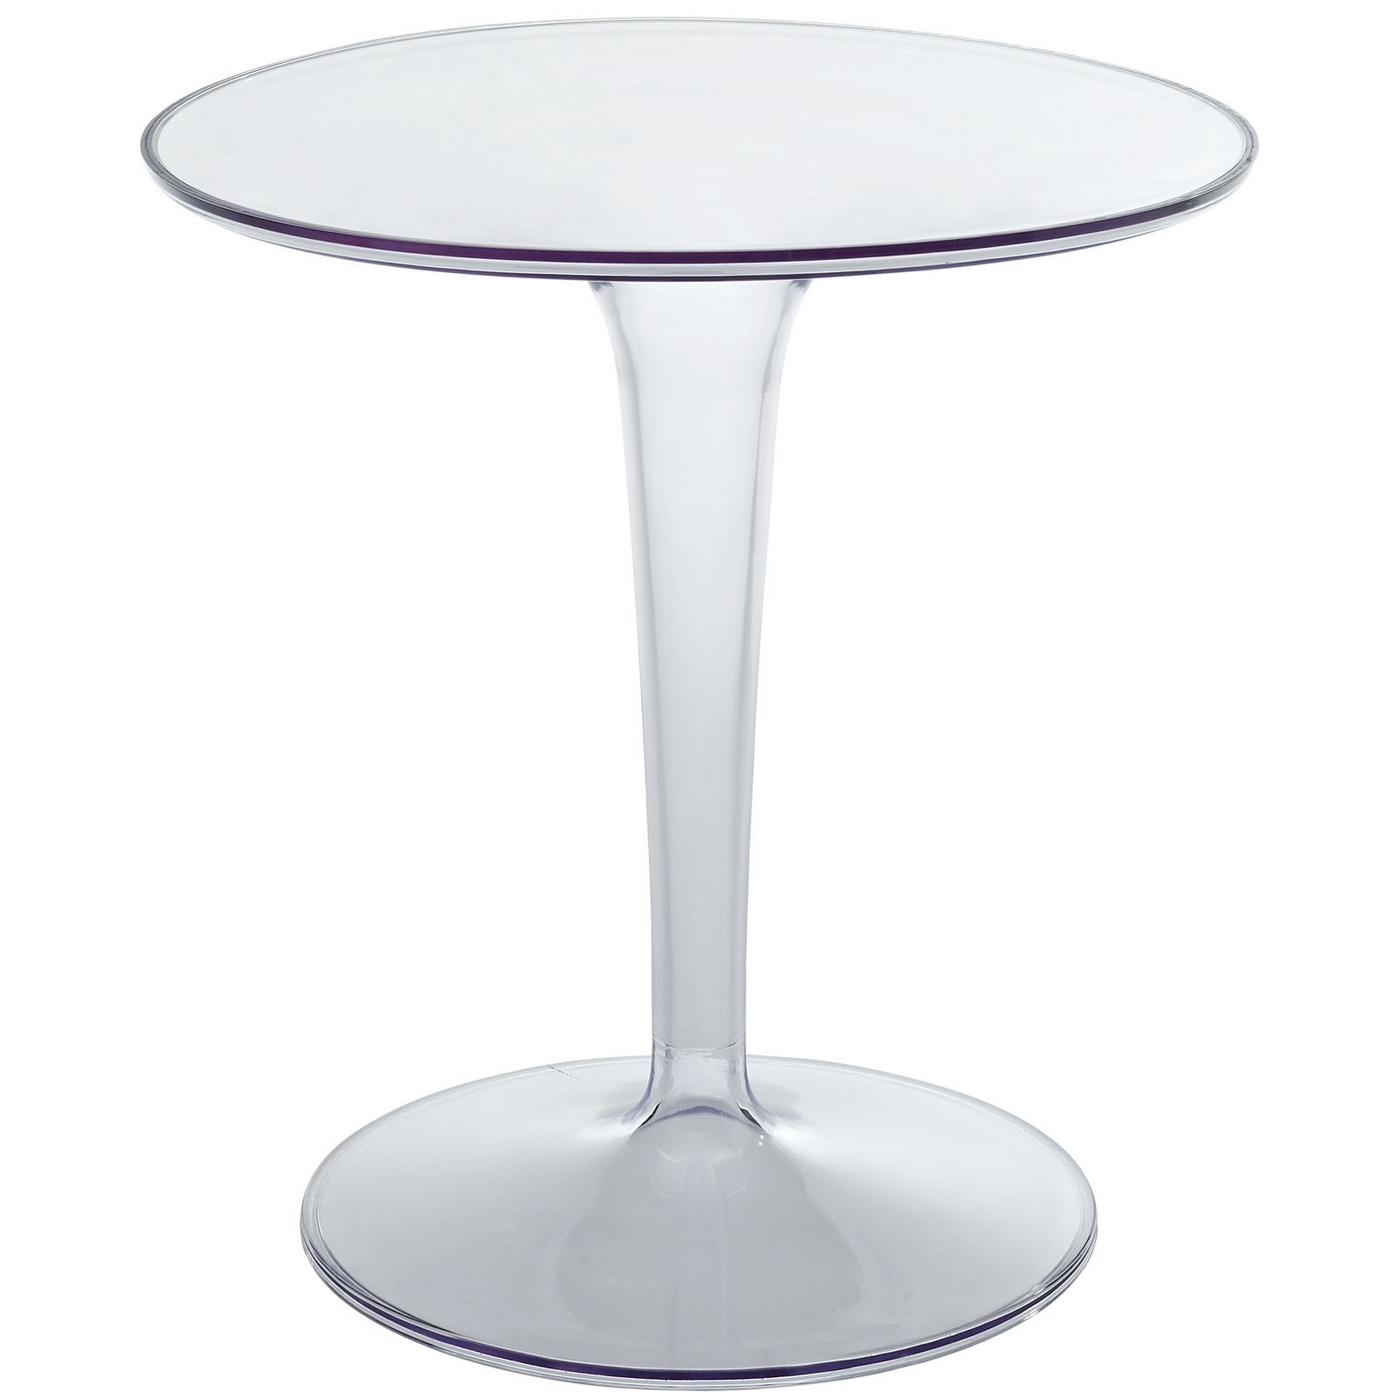 Canvas modern round side table with transparent pedestal for Table transparente